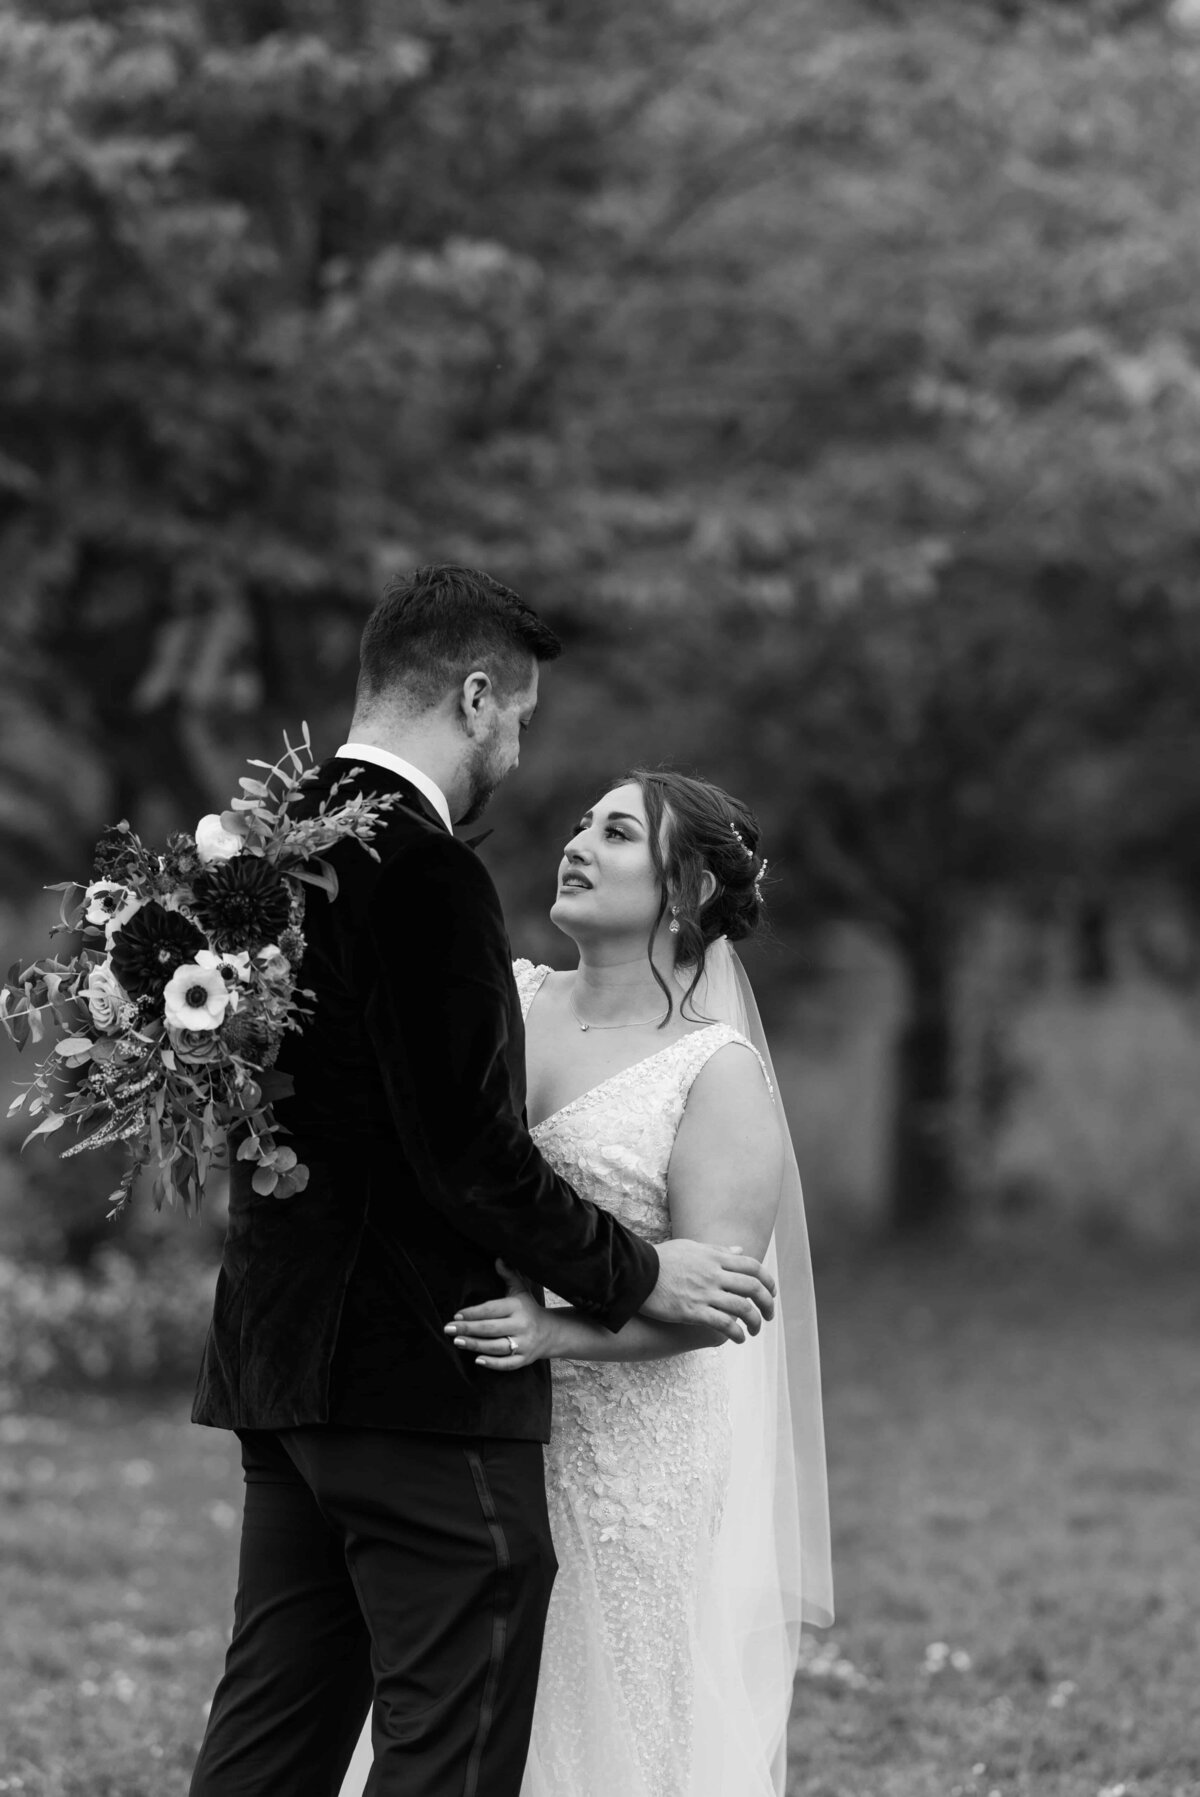 Black and White image of bride and groom looking at one another.